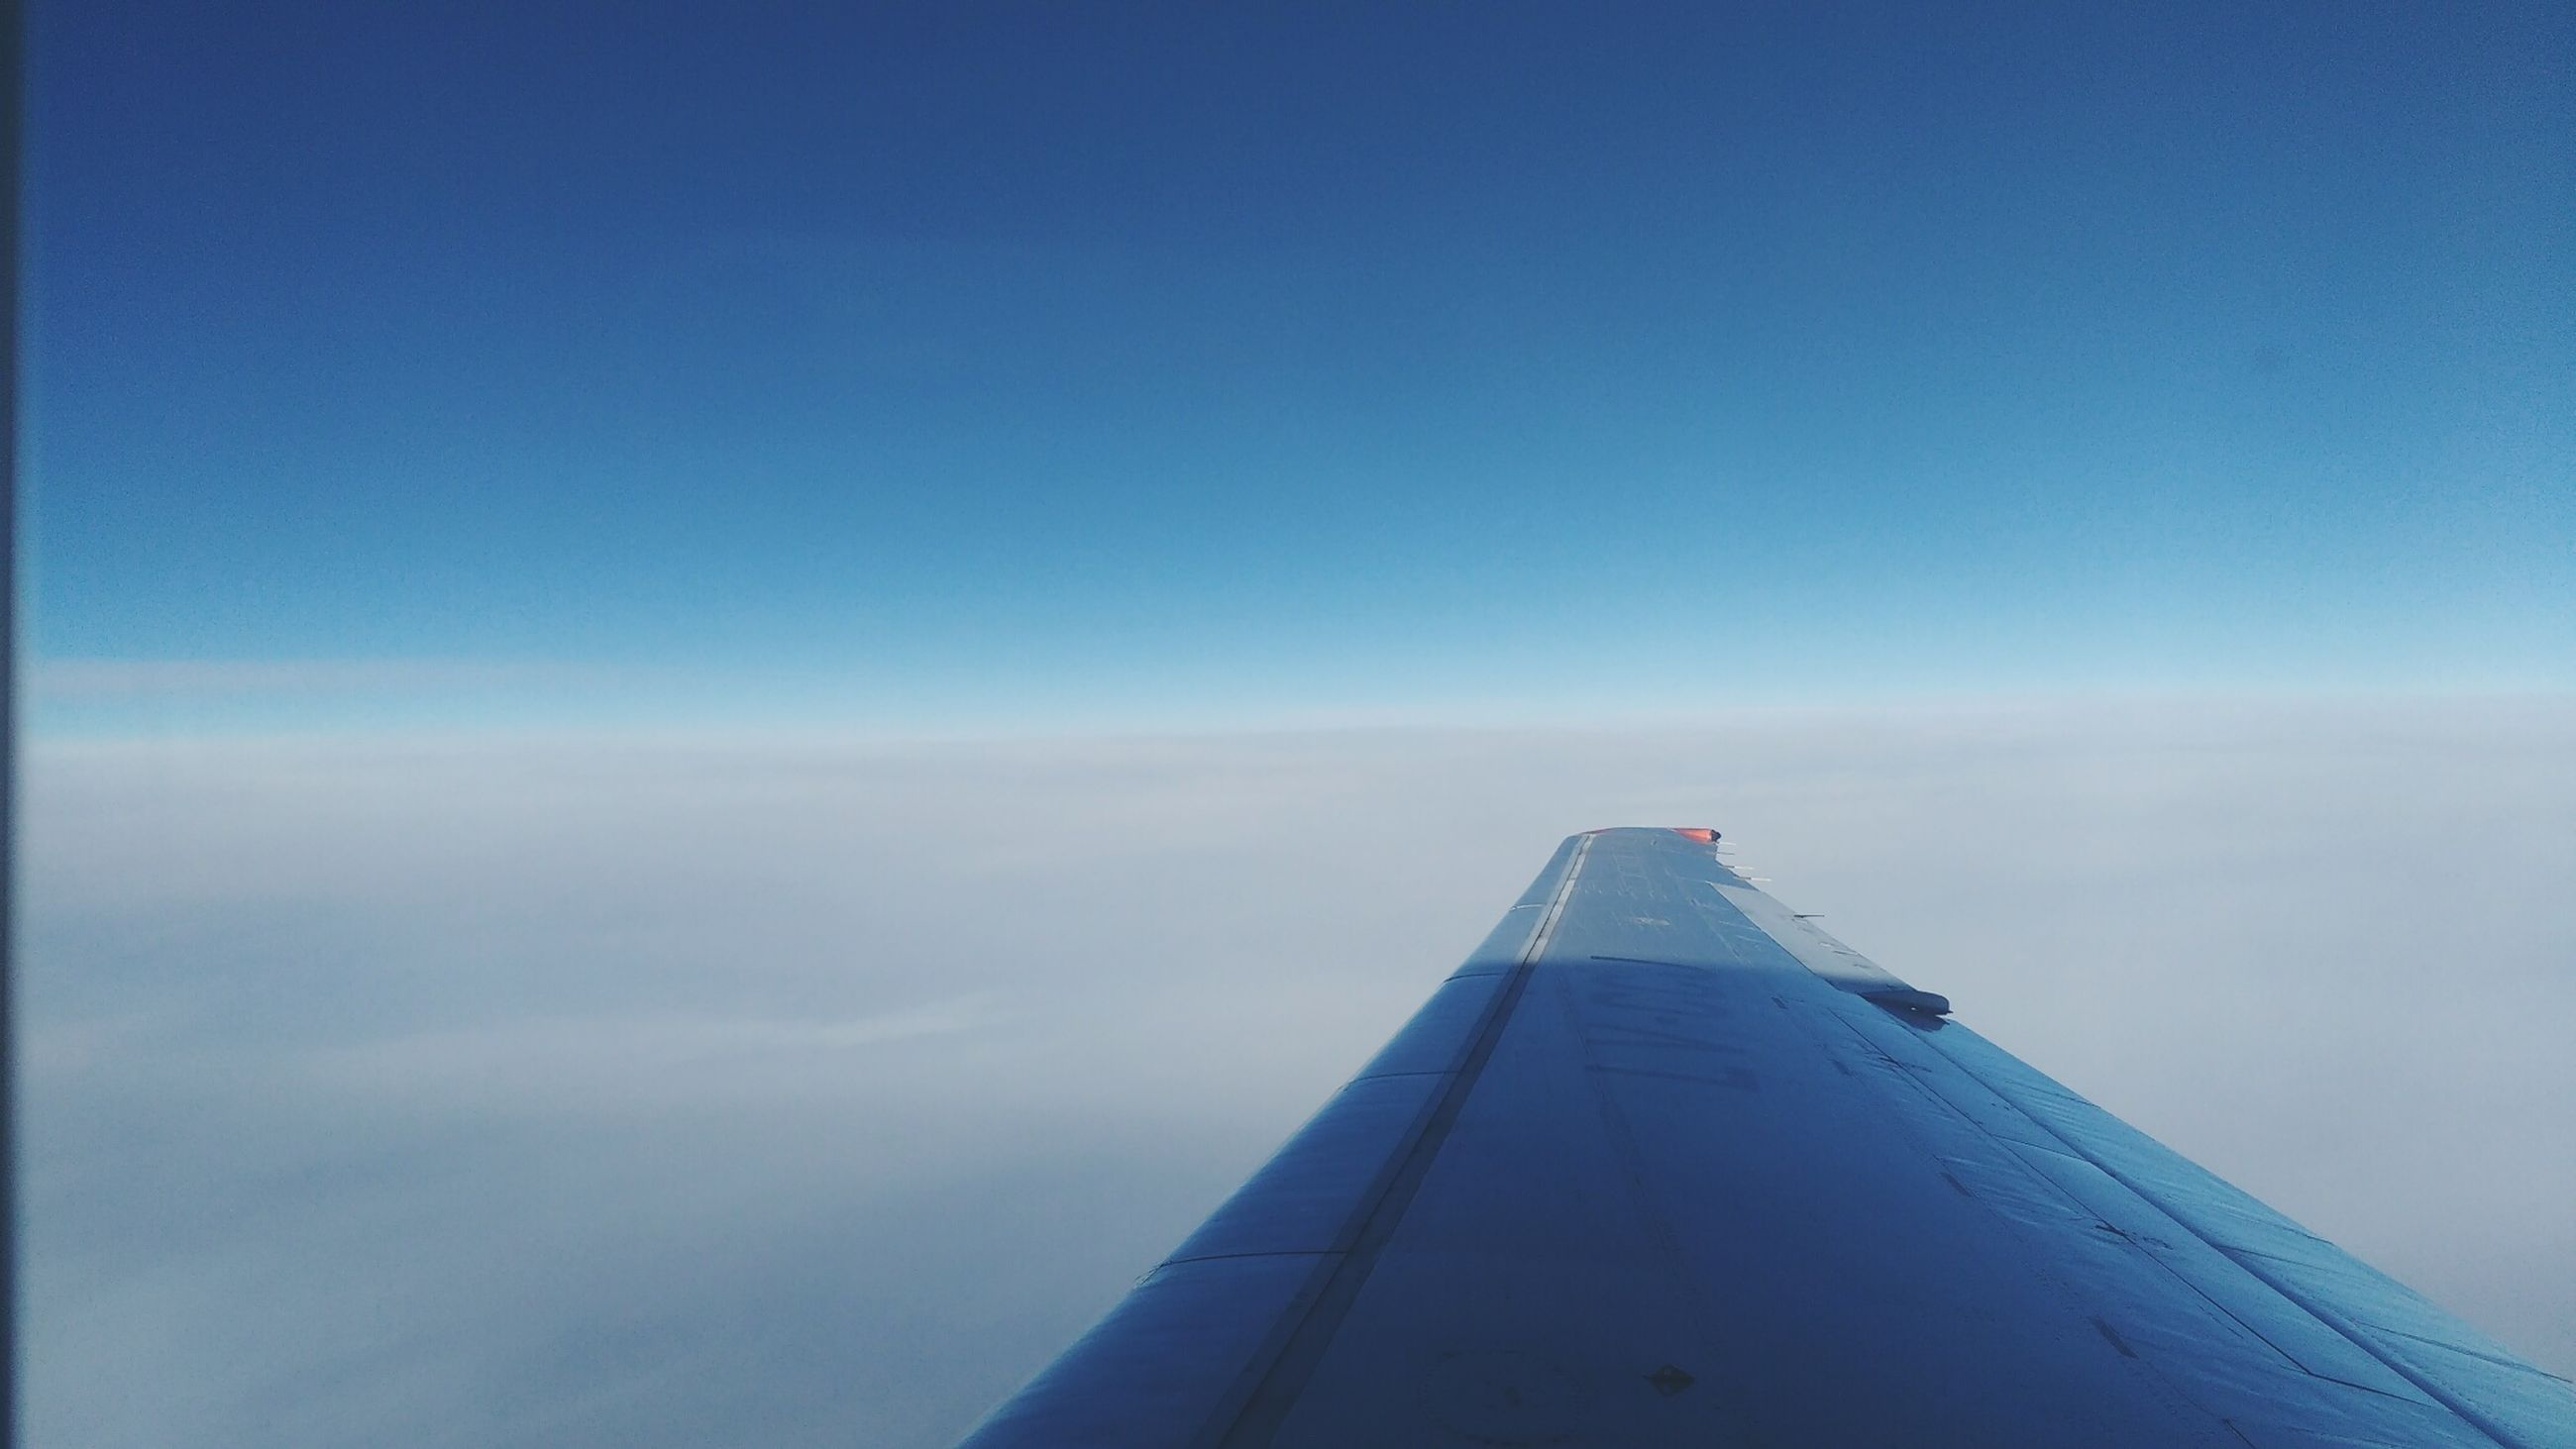 blue, copy space, no people, sky, airplane, outdoors, day, transportation, nature, flying, close-up, airplane wing